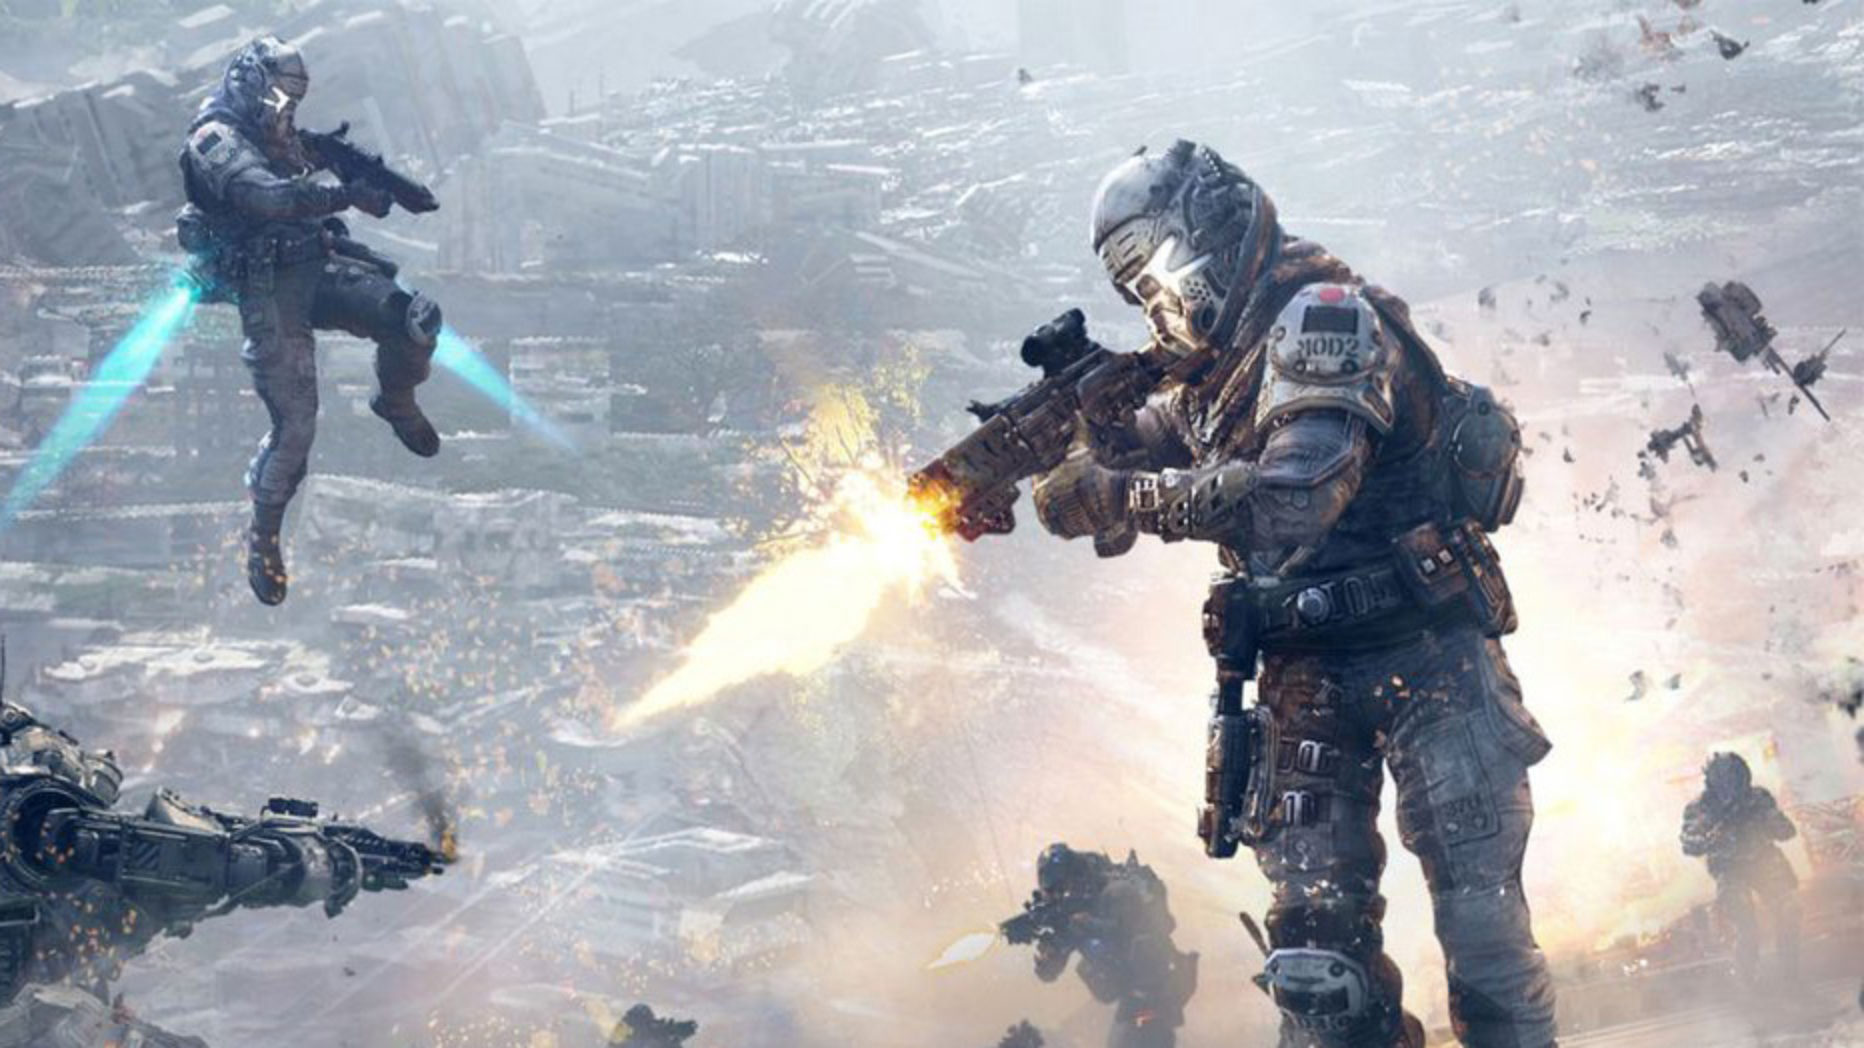 Skip or Buy? | What Did You Think Of TitanFall 2's Multiplayer Test